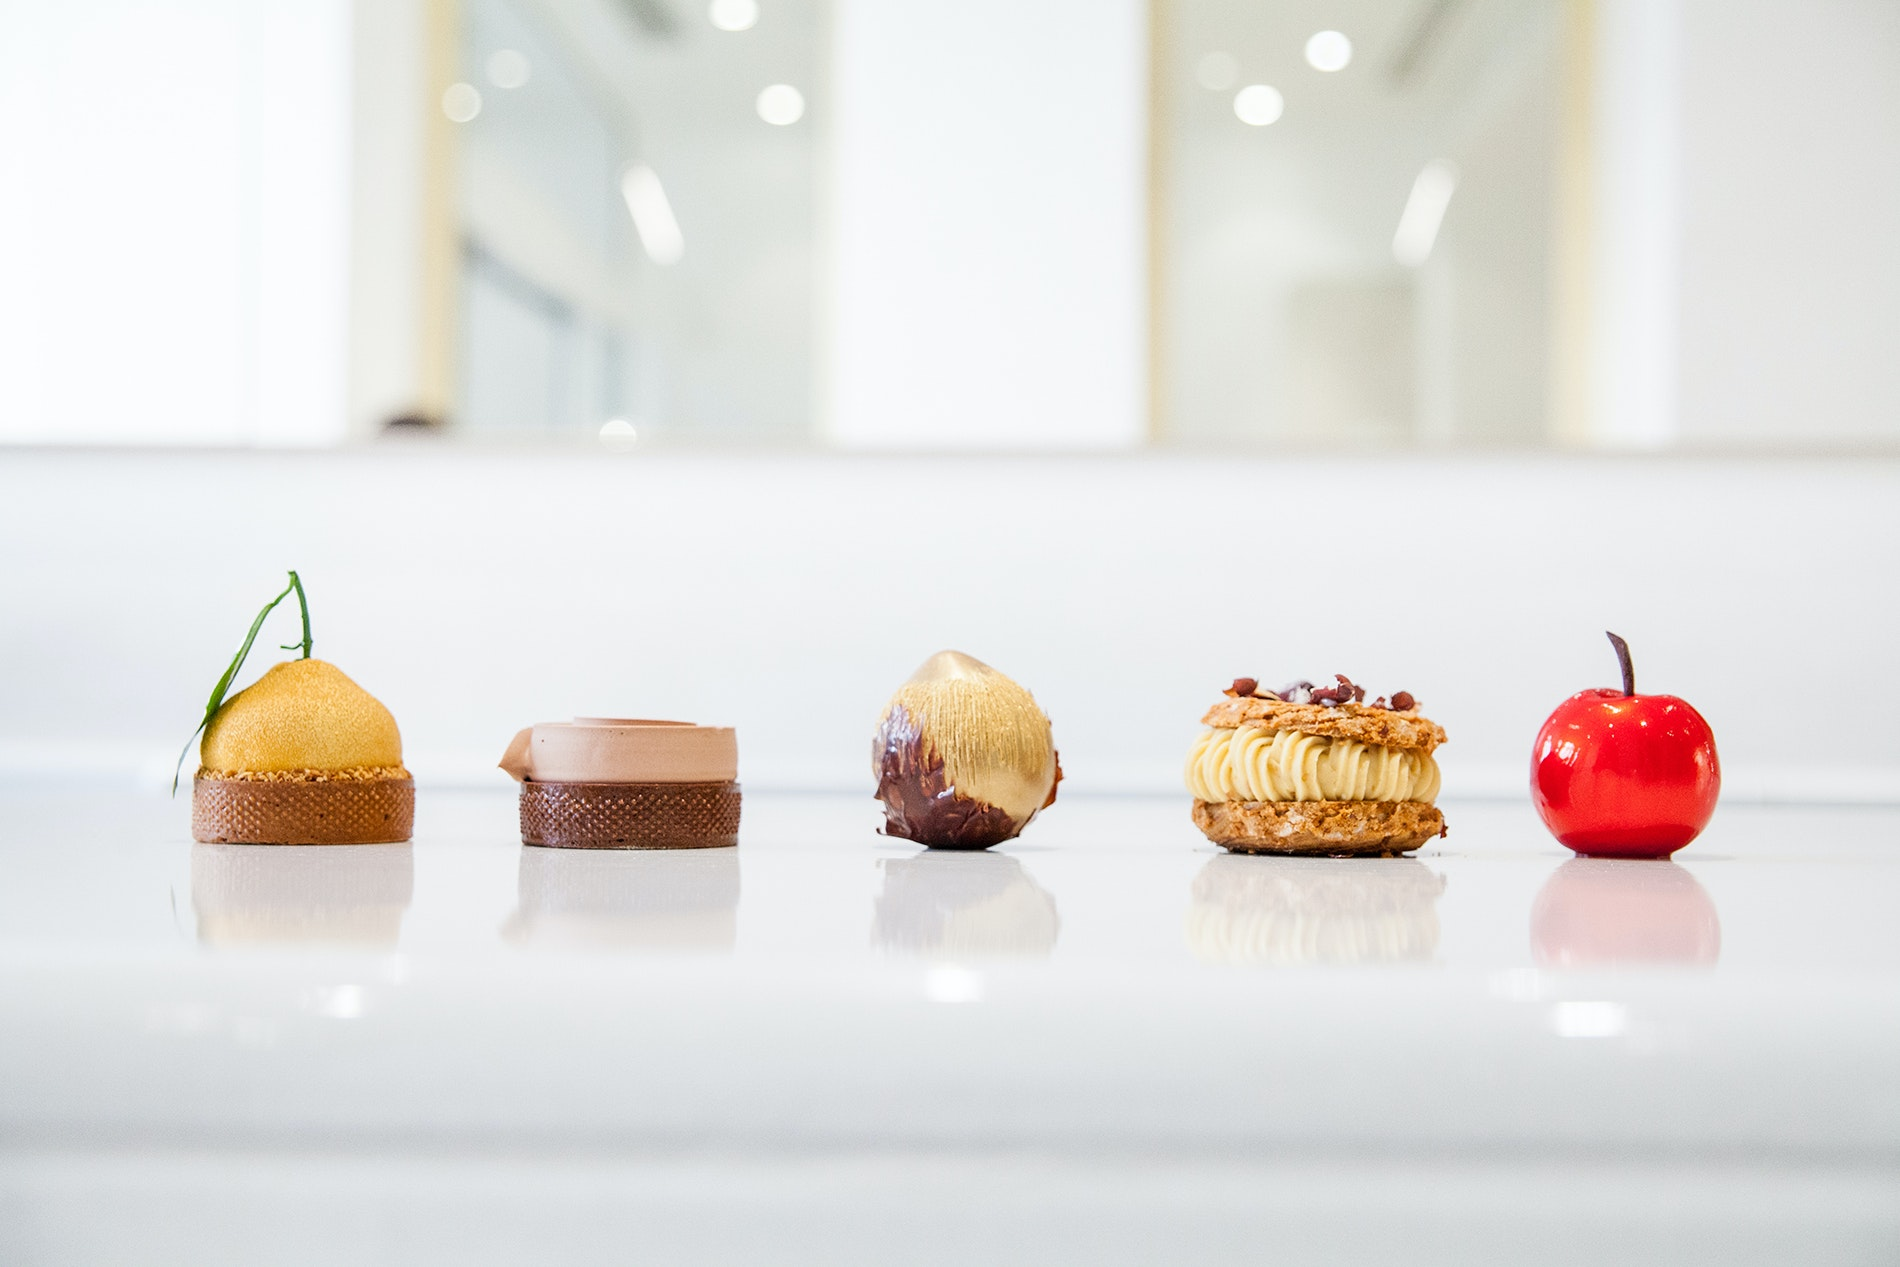 World-renowned pastry chef Cédric Grolet prepares the French sweets at La Pâtisserie du Meurice.